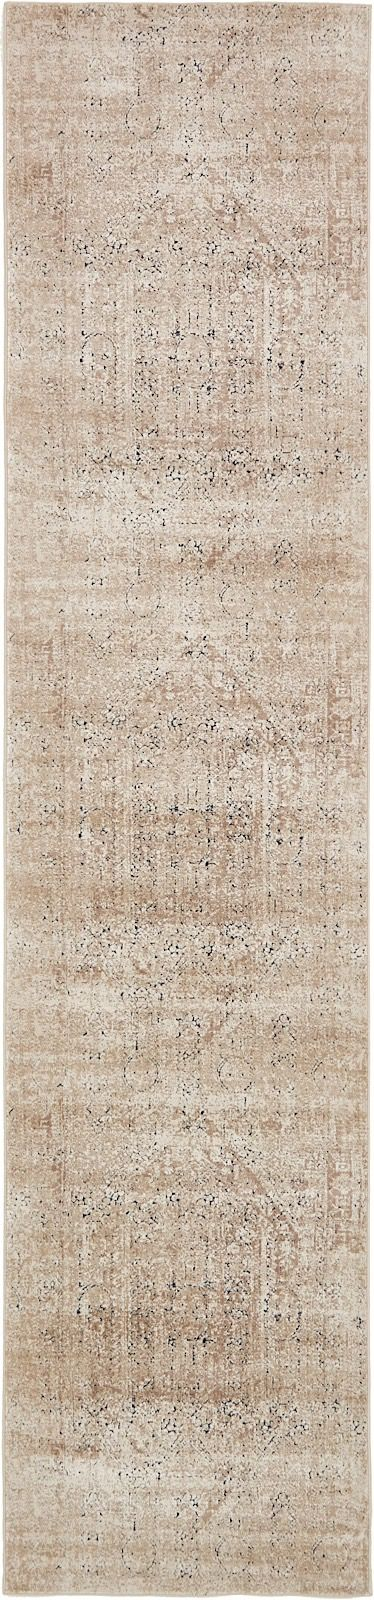 rugpal cottage transitional area rug collection